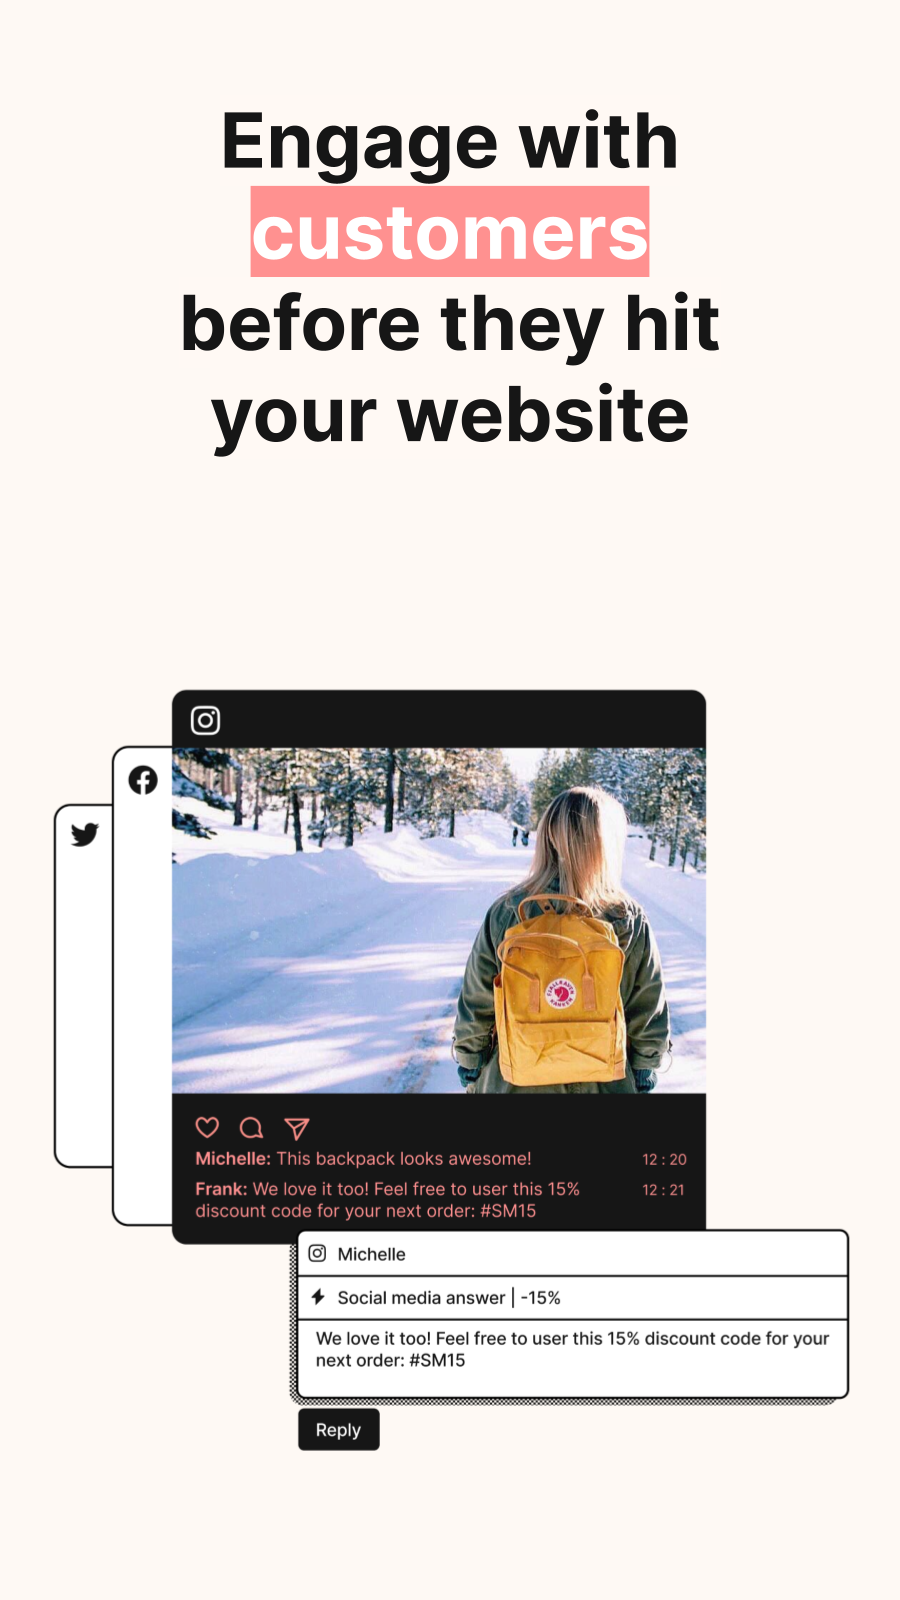 Engage with customers before they hit your website